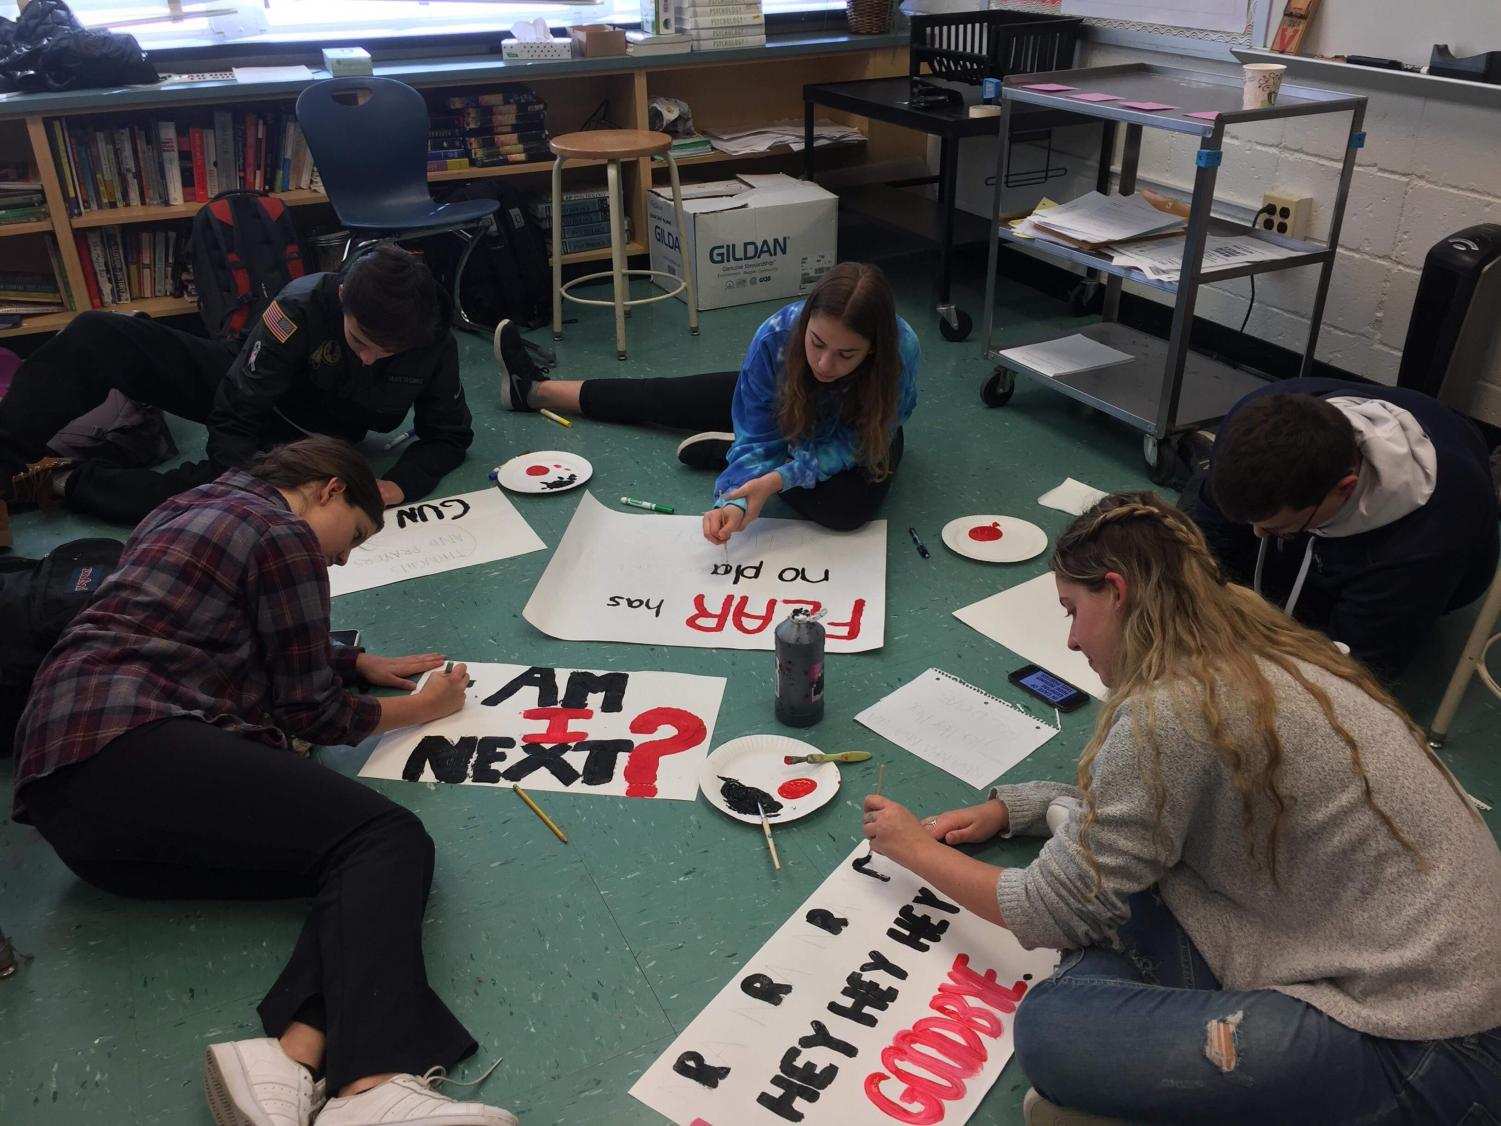 Students in the #neveragain Whitman Facebook group made posters that were used for anti-gun protests. Many Whitman students participated in the March 14 Student March in Washington D.C. to voice their concerns on gun violence in the aftermath of recent school shootings. Photo by Matt Proestel.